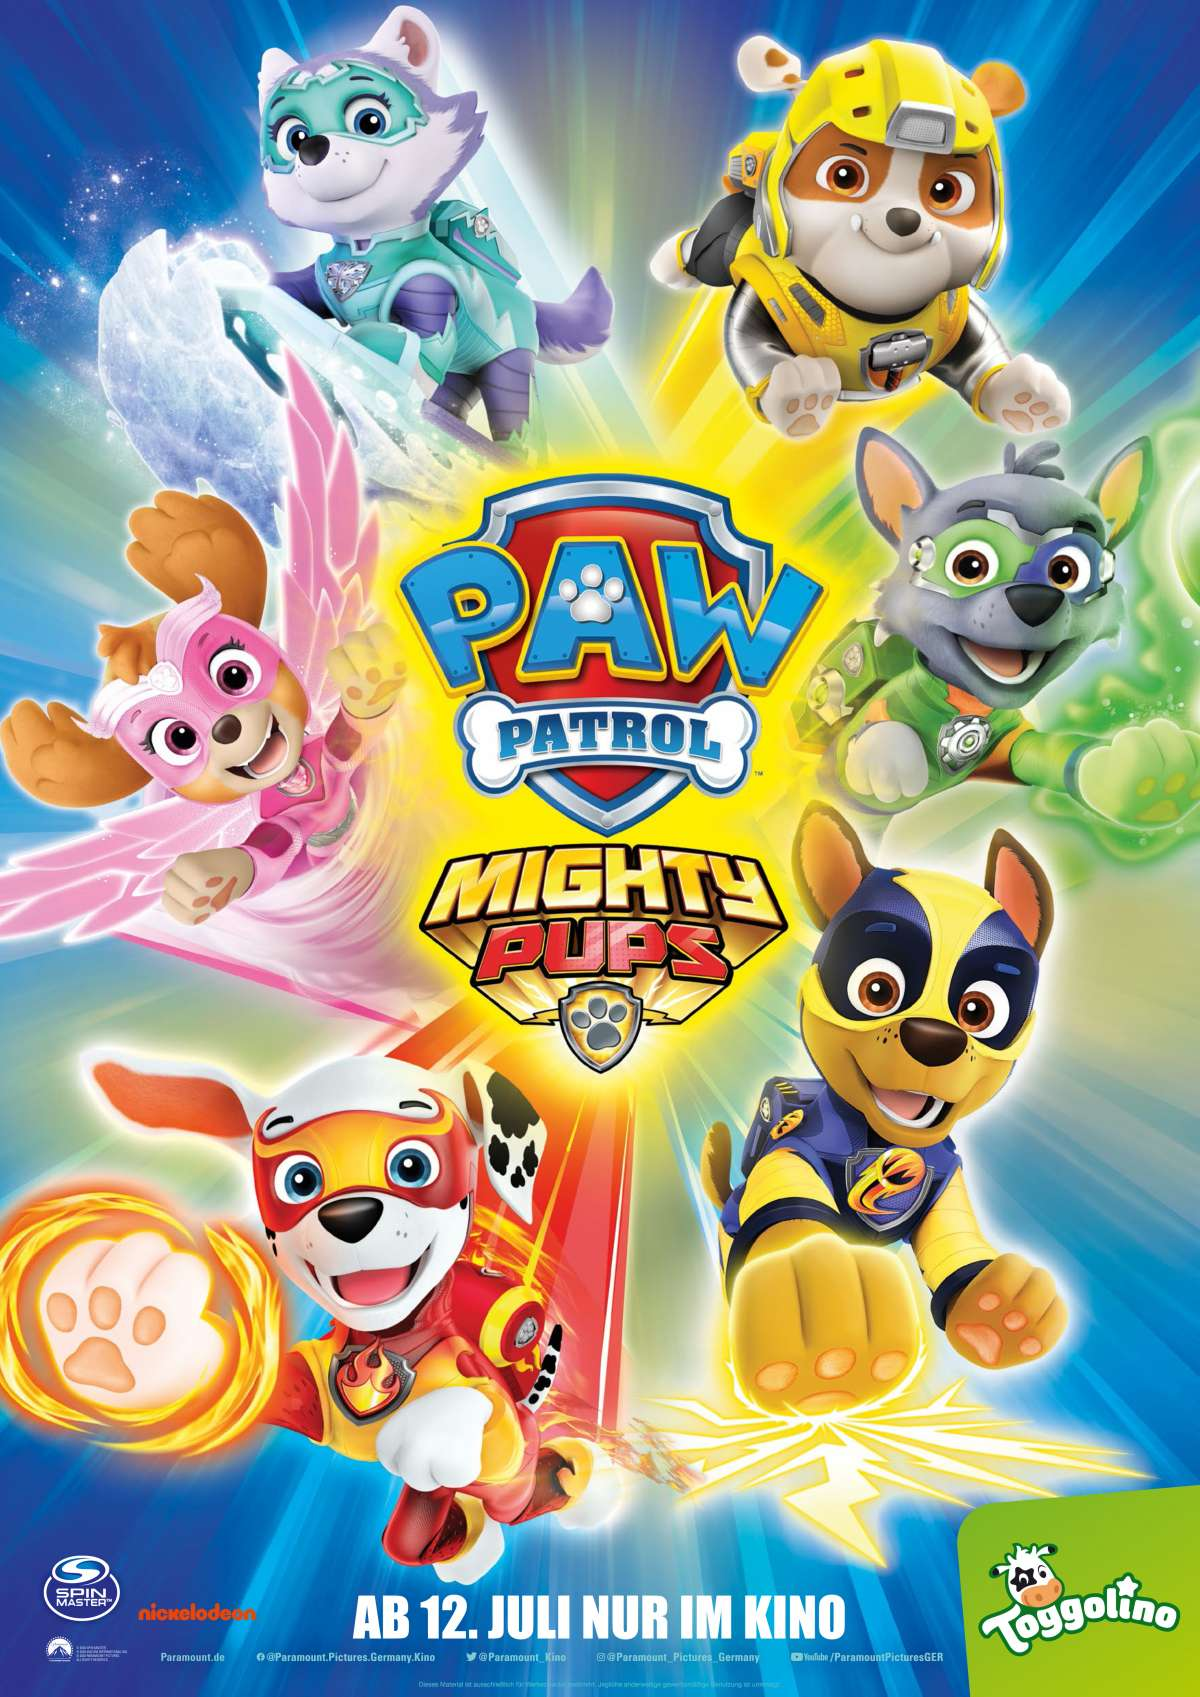 Paw Patrol: Mighty Pups - Cine-Royal  - Fritzlar